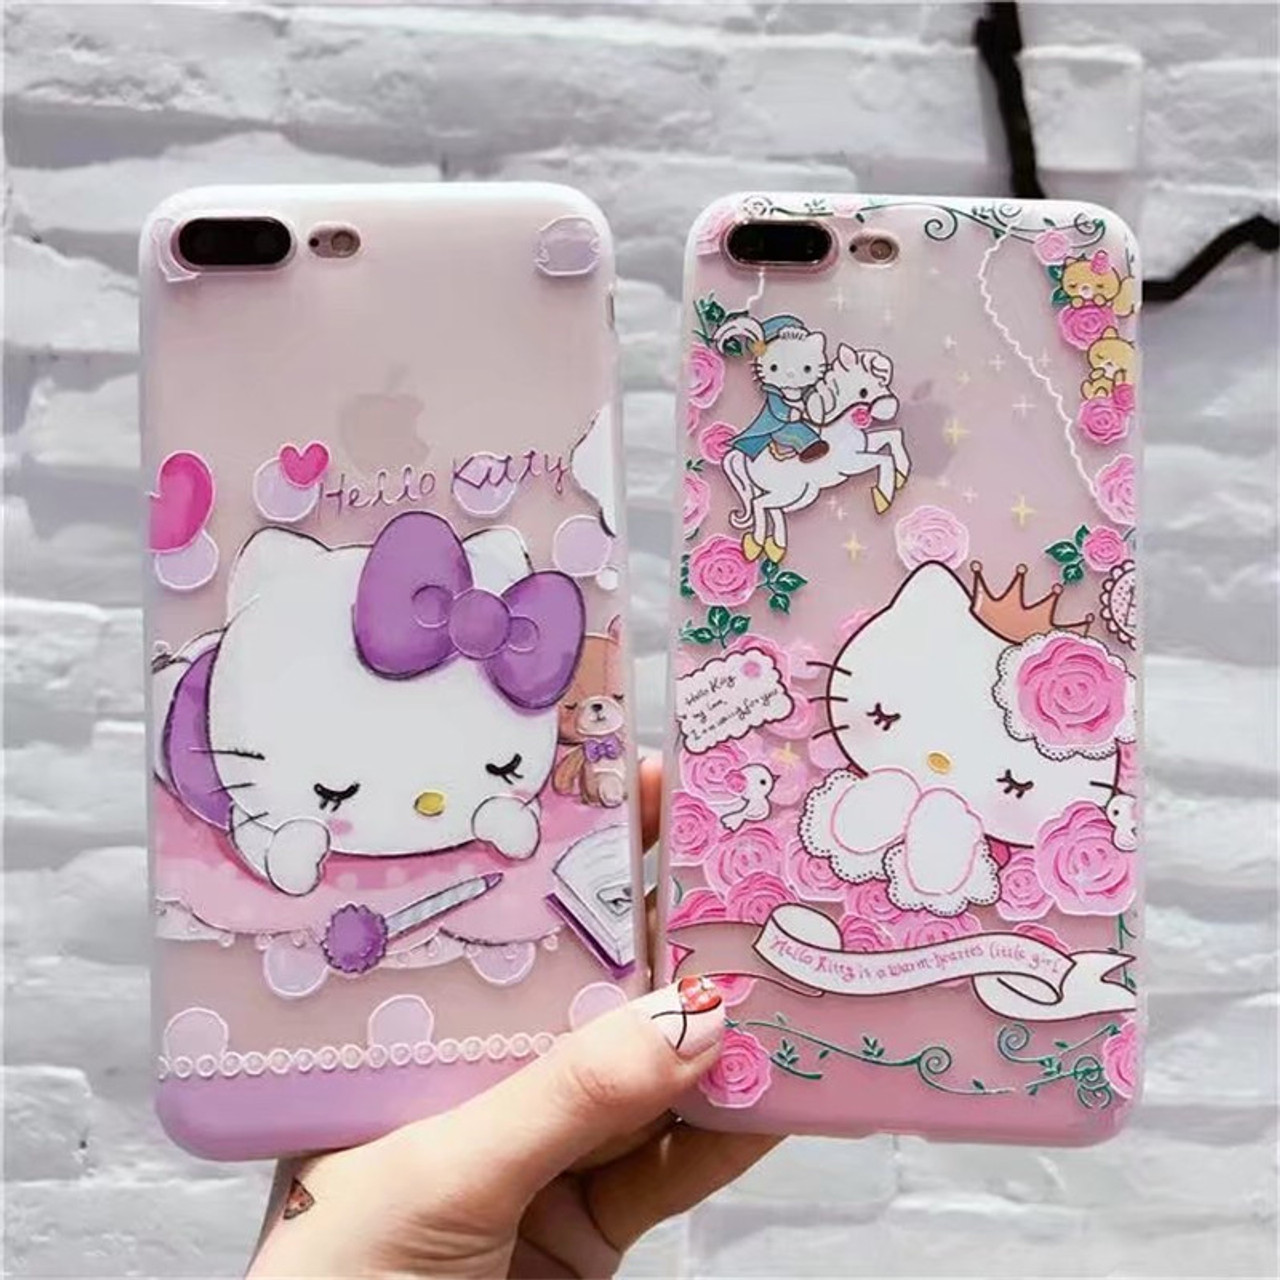 ad001119133781 ... sFor iPhone 8 Luxury 3D Cartoon Phone Case For iPhone 6 6s Plus Case  Hello Kitty ...